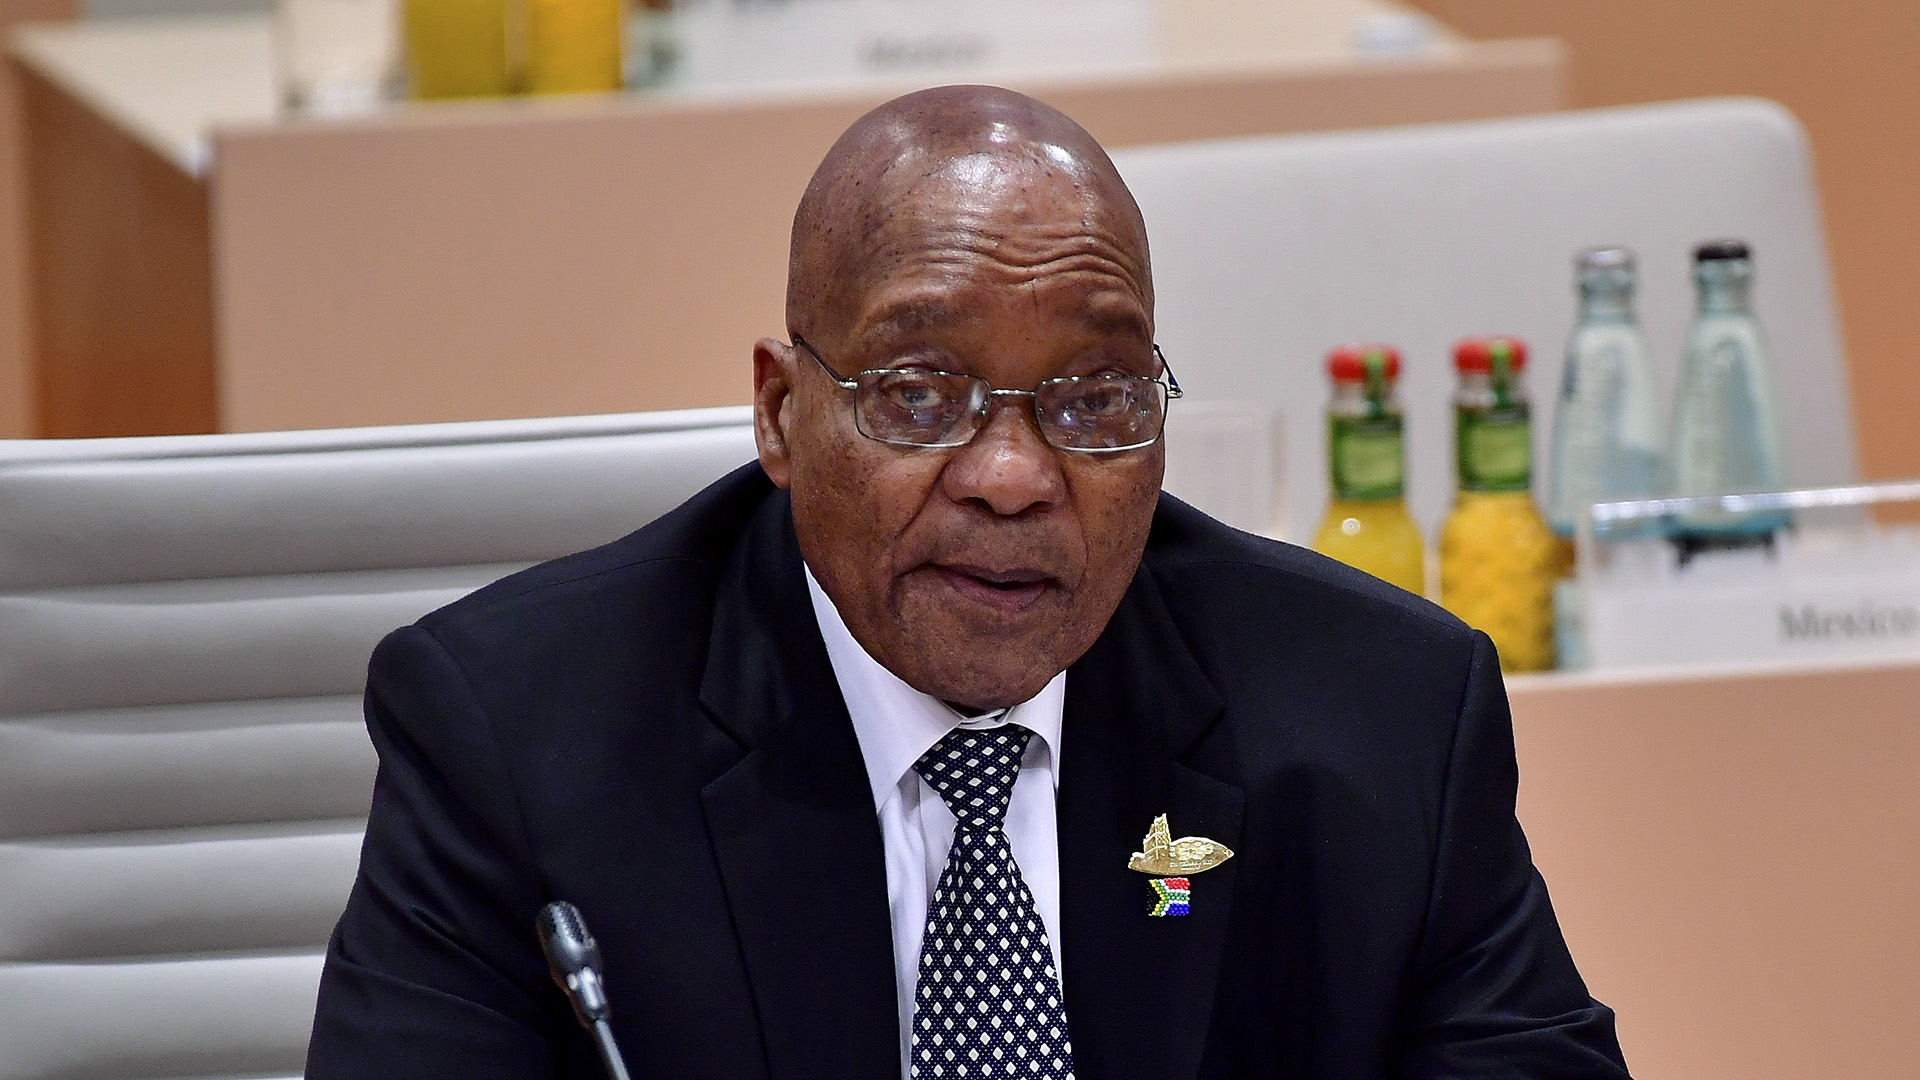 South Africa's Ex-president Jacob Zuma Sentenced To 15 Months Imprisonment